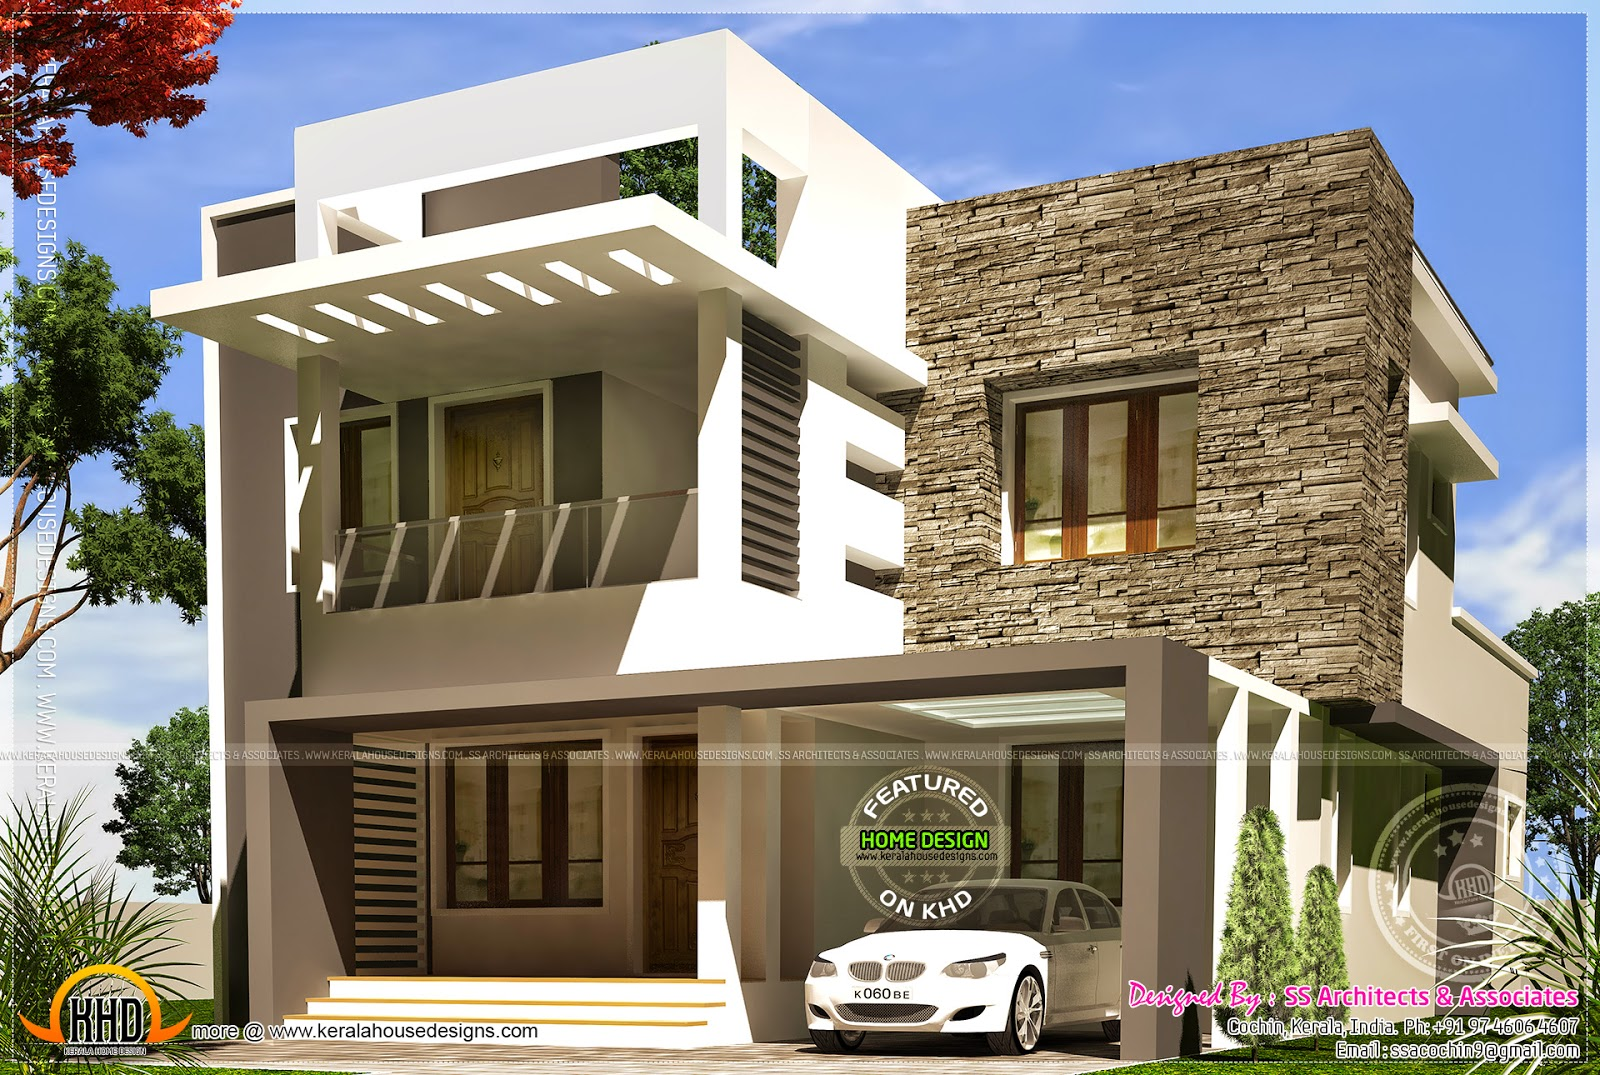 Beautiful contemporary villa in 1700 kerala home 1500 sq ft house plan indian design